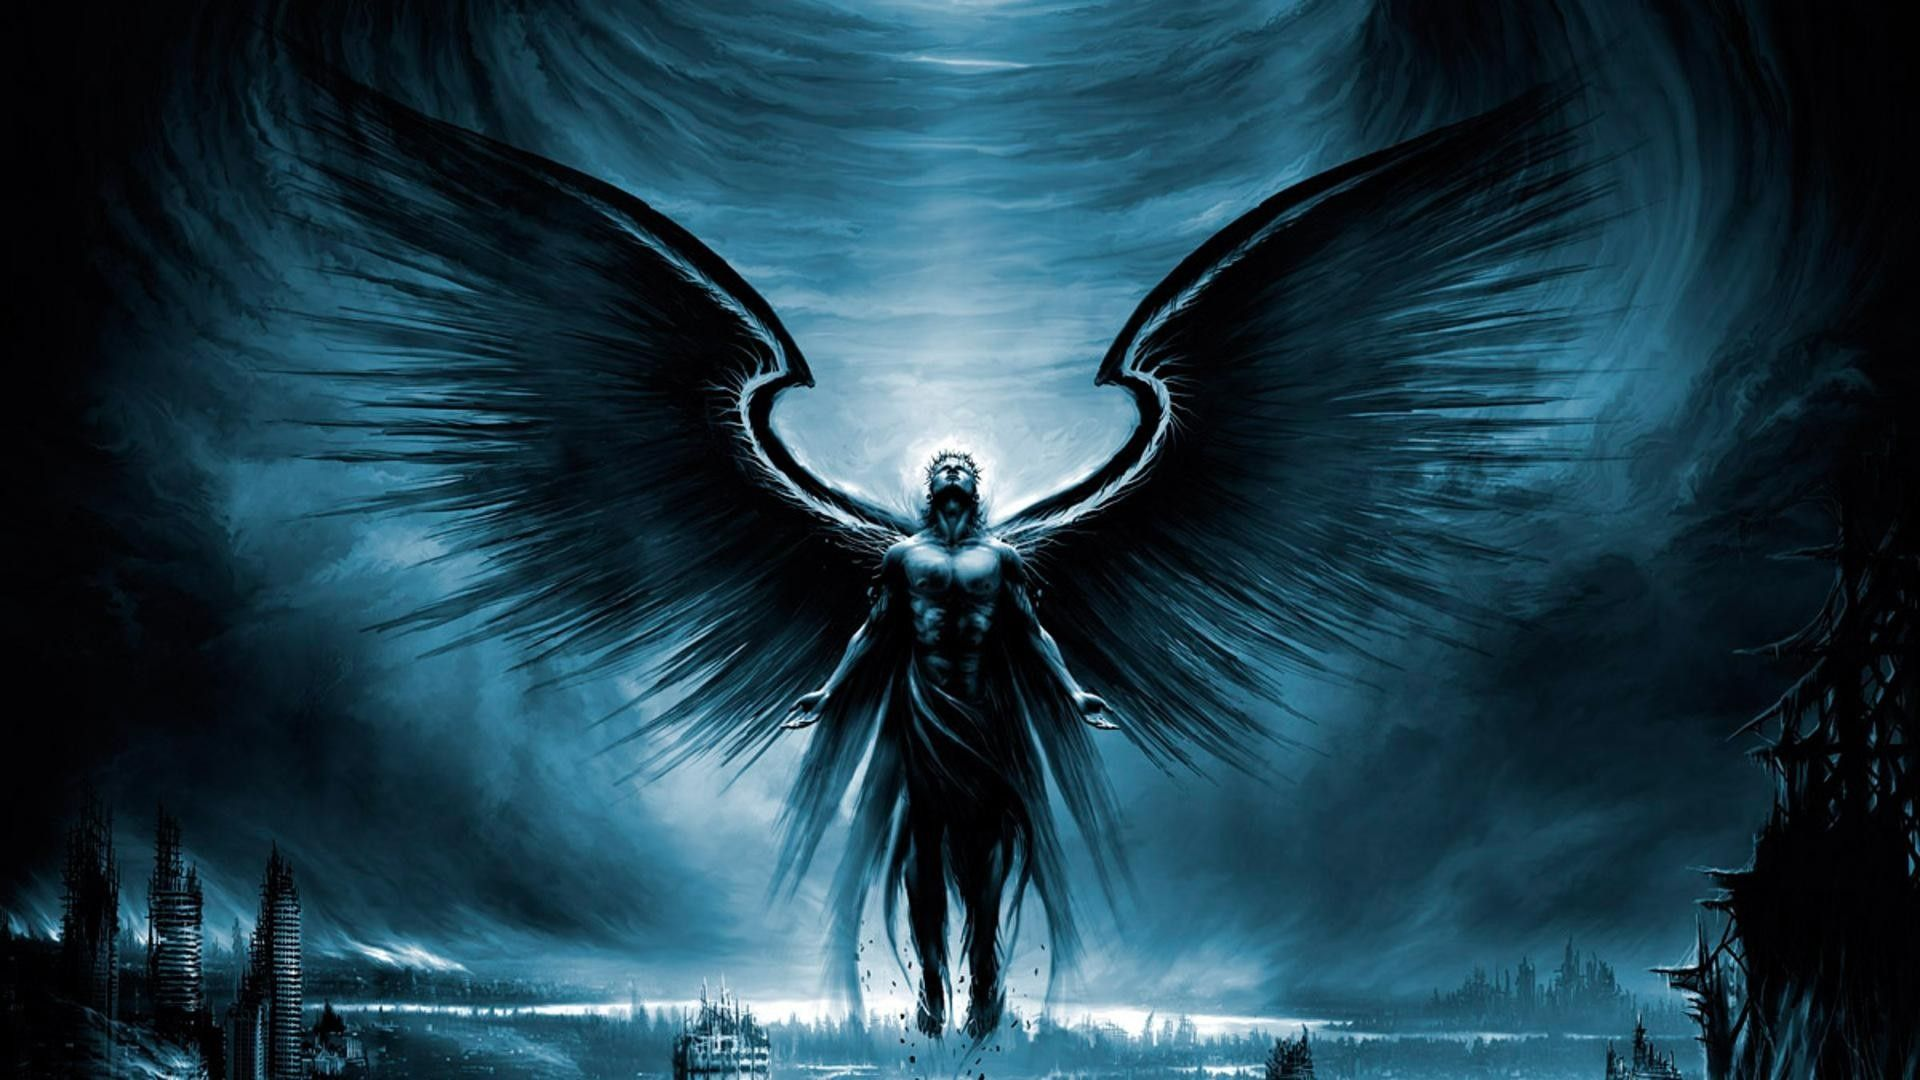 Pictures Of The Fallen Angel Lucifer